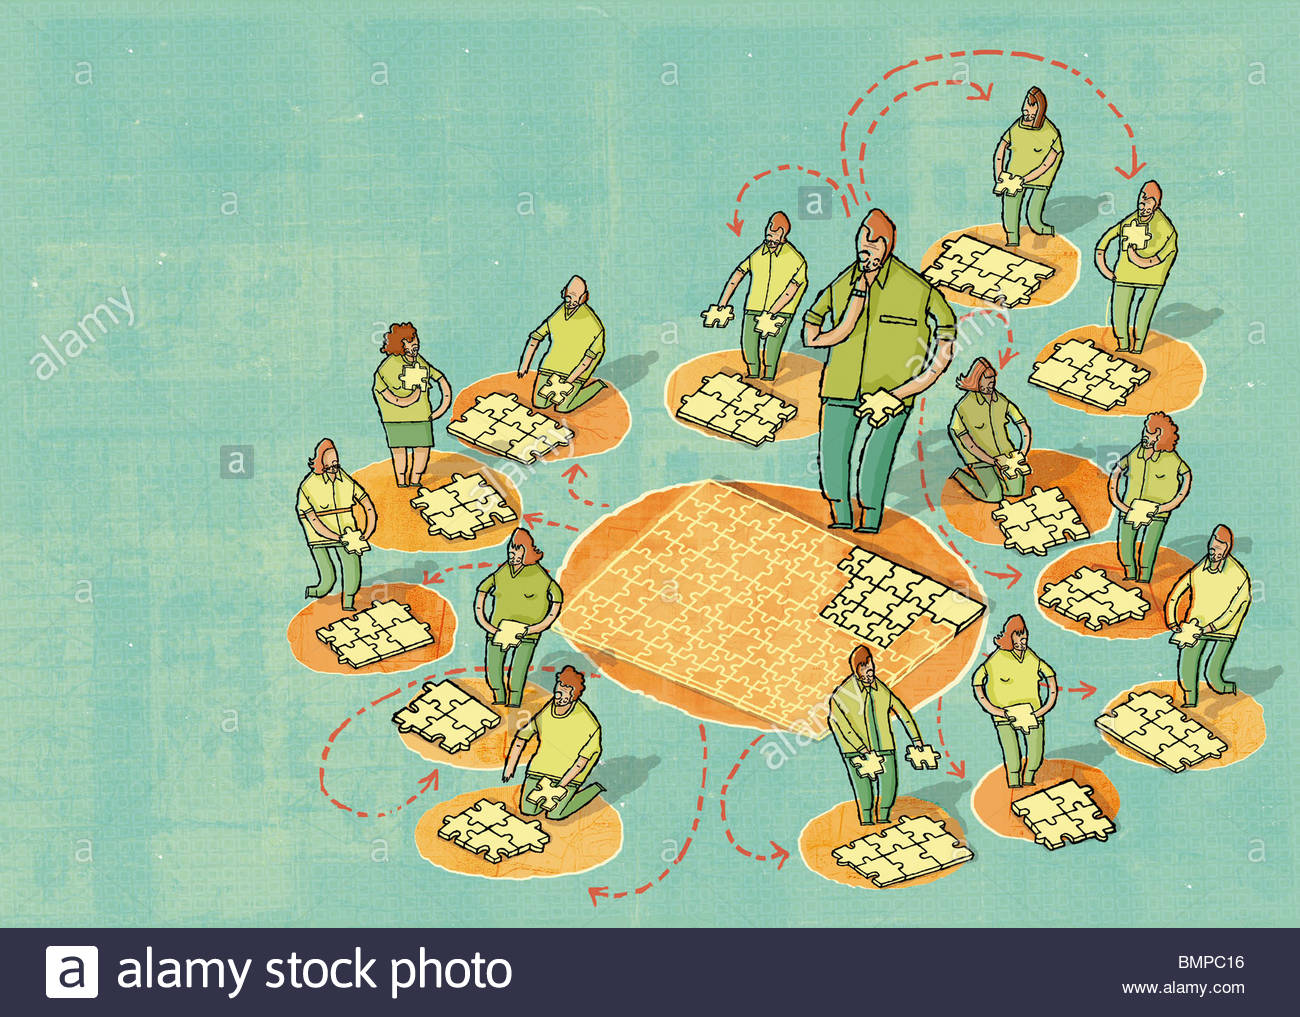 Outsourcing of jigsaw pieces - Stock Image